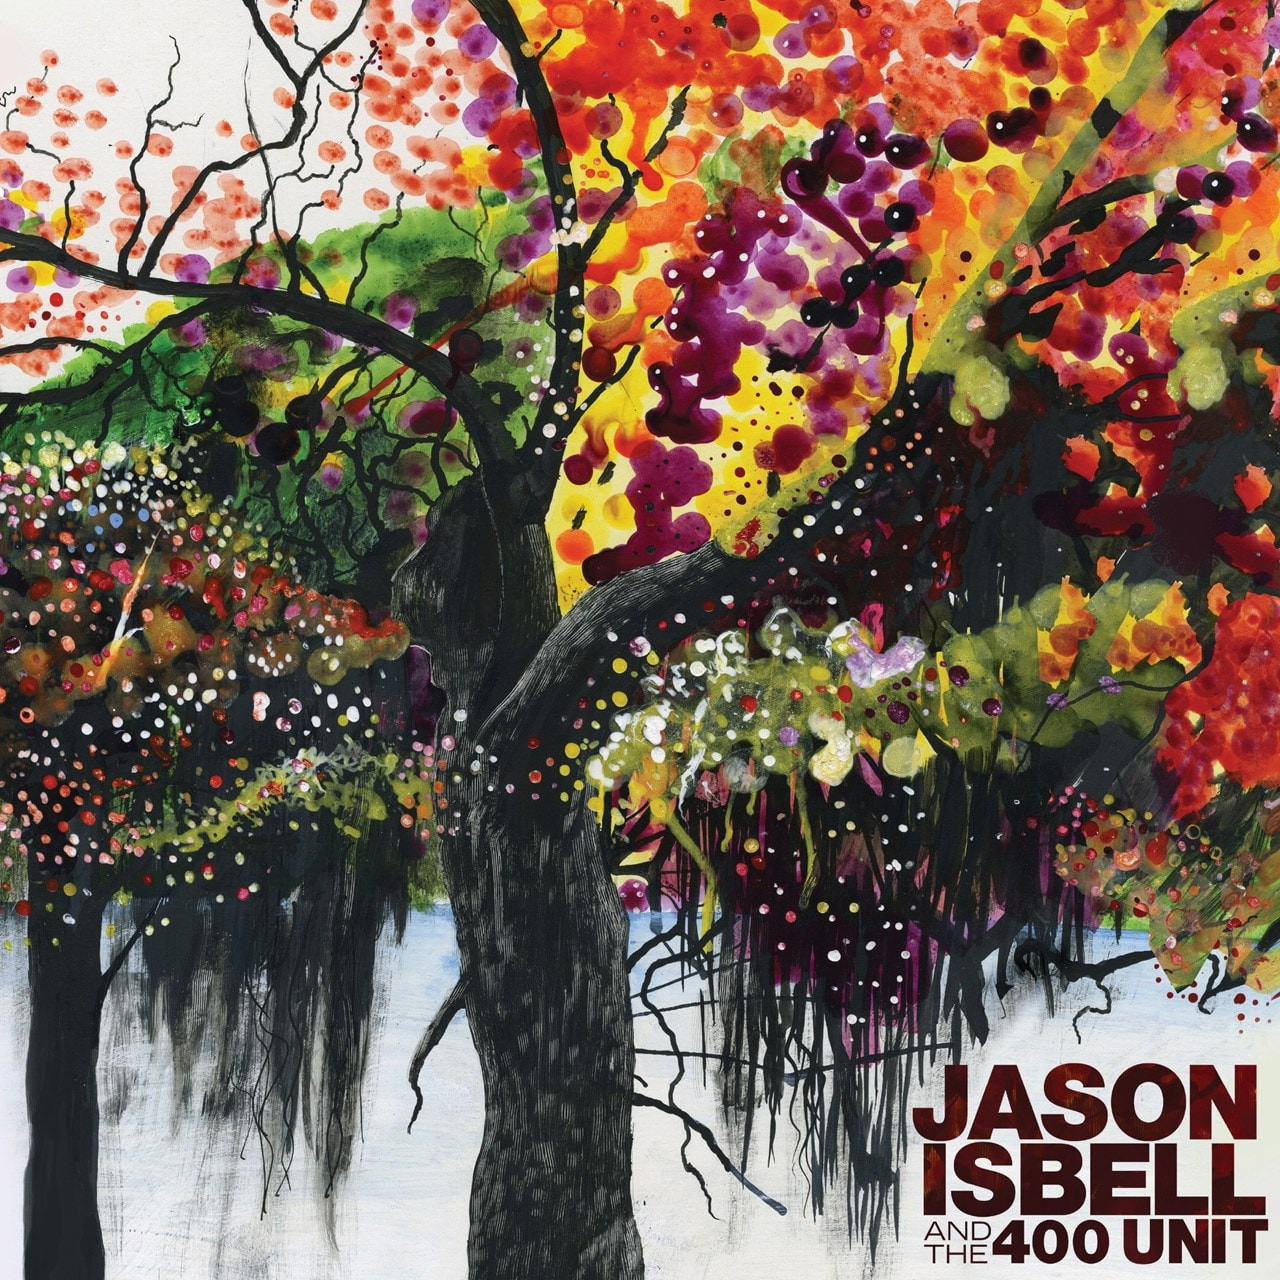 Jason Isbell and the 400 Unit - 1